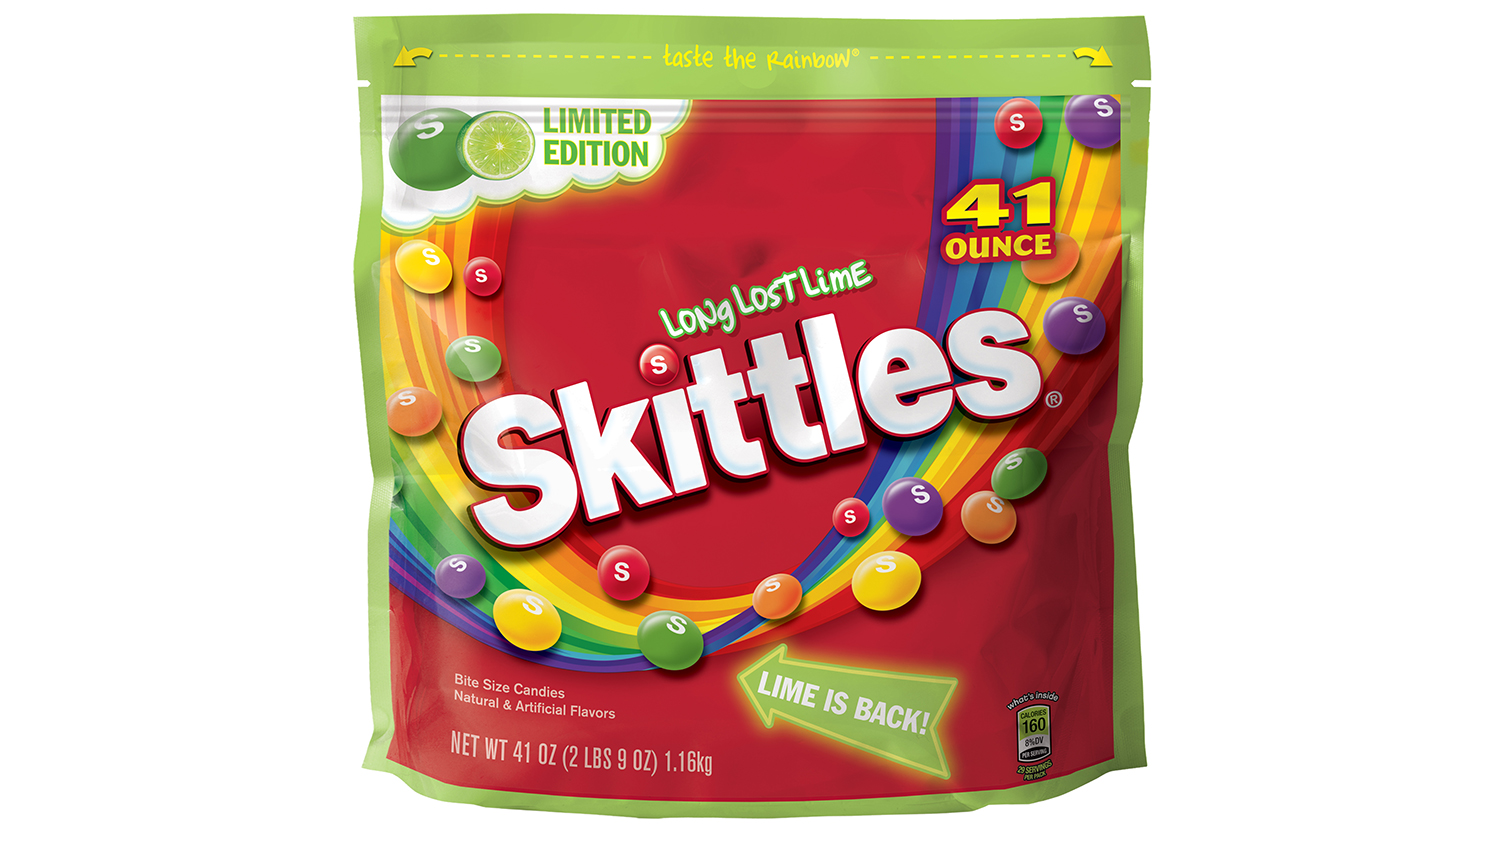 long lost lime skittles have returned